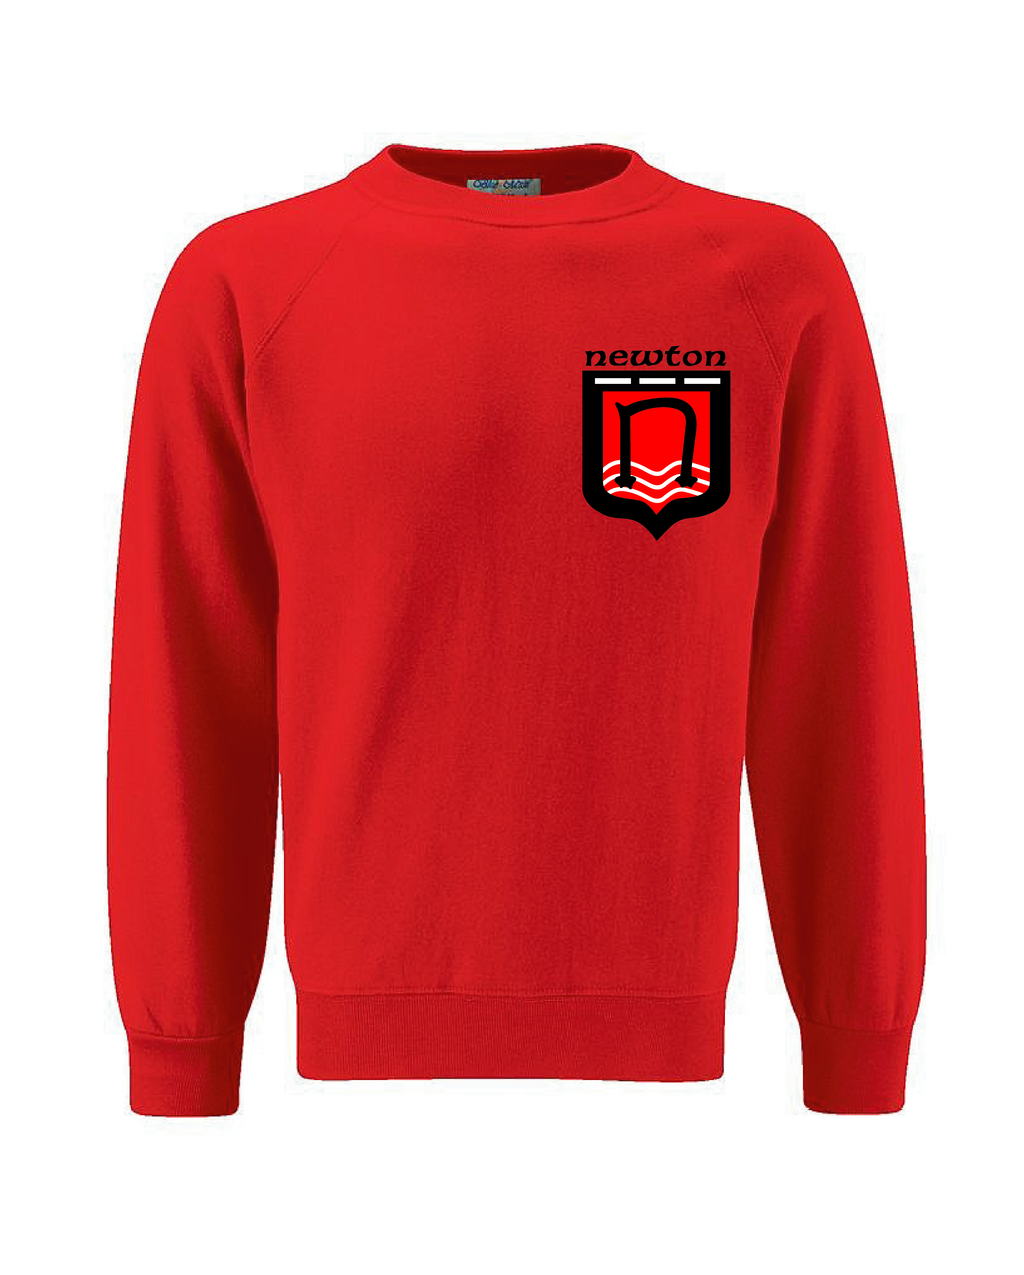 Newton Primary (Sweatshirt)